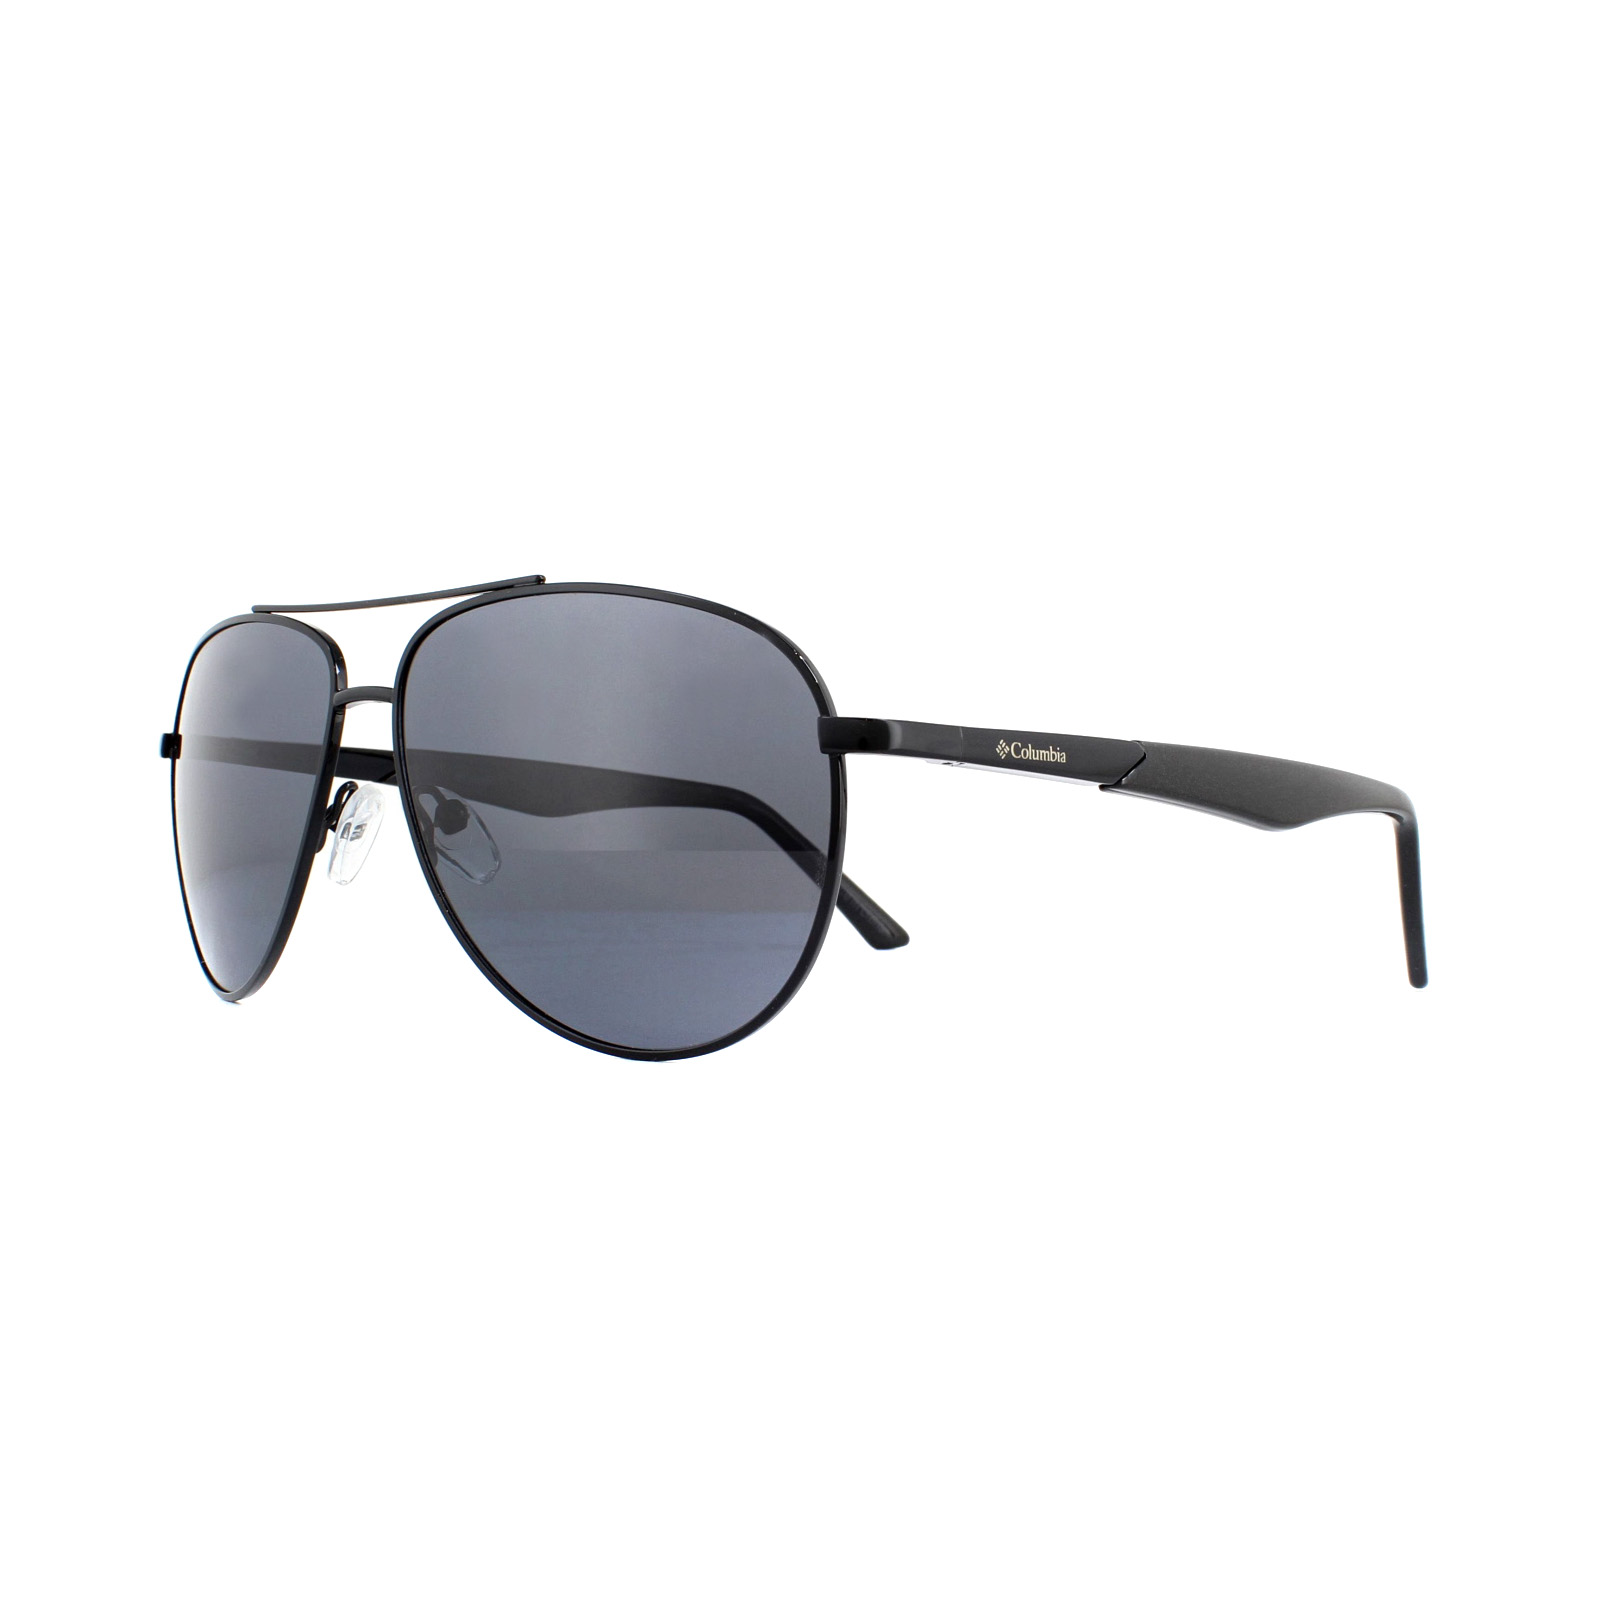 df815bb1eb Sentinel Columbia Sunglasses CBC703 C02 Shiny Black Dark Grey Polarized